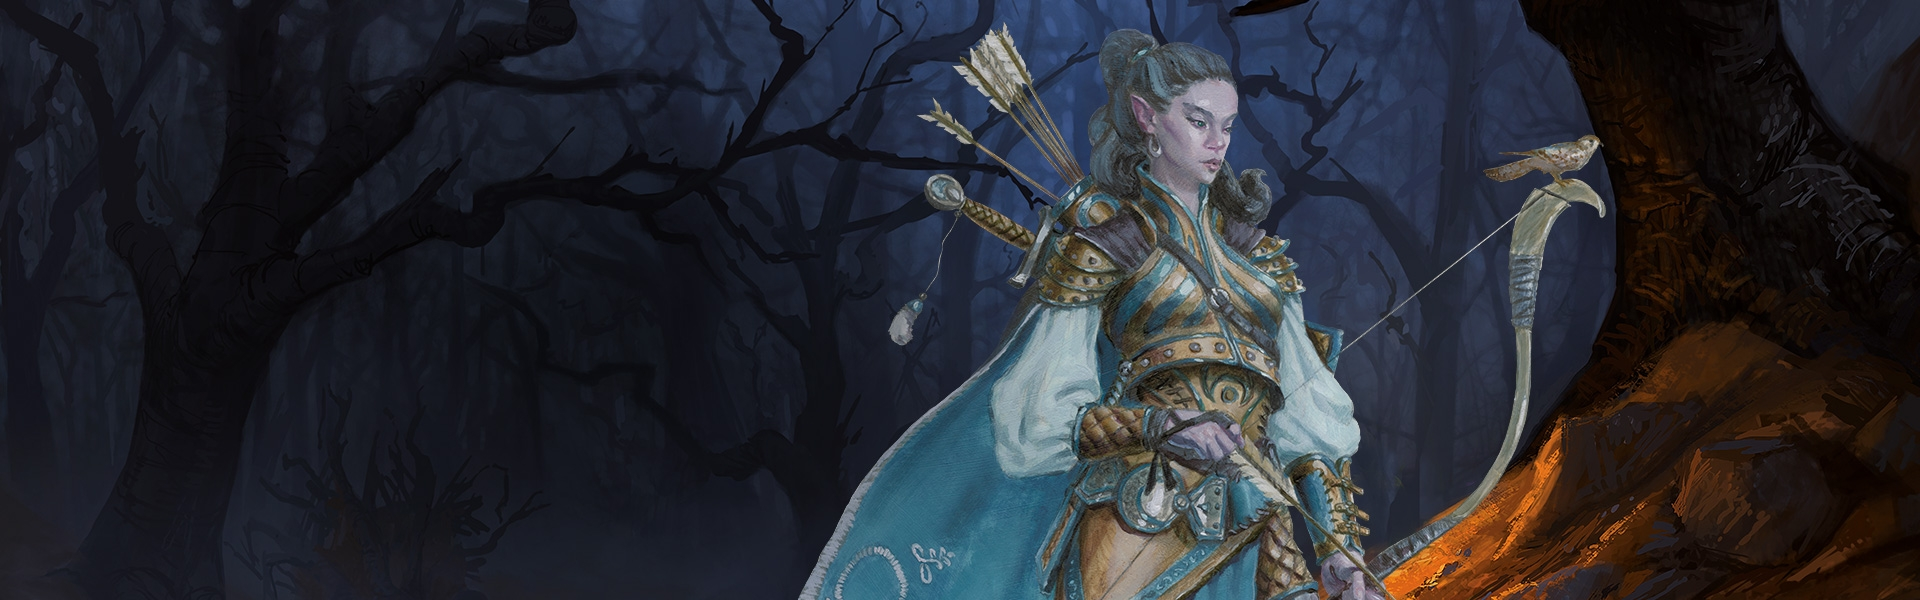 dnd-classes_ranger_header